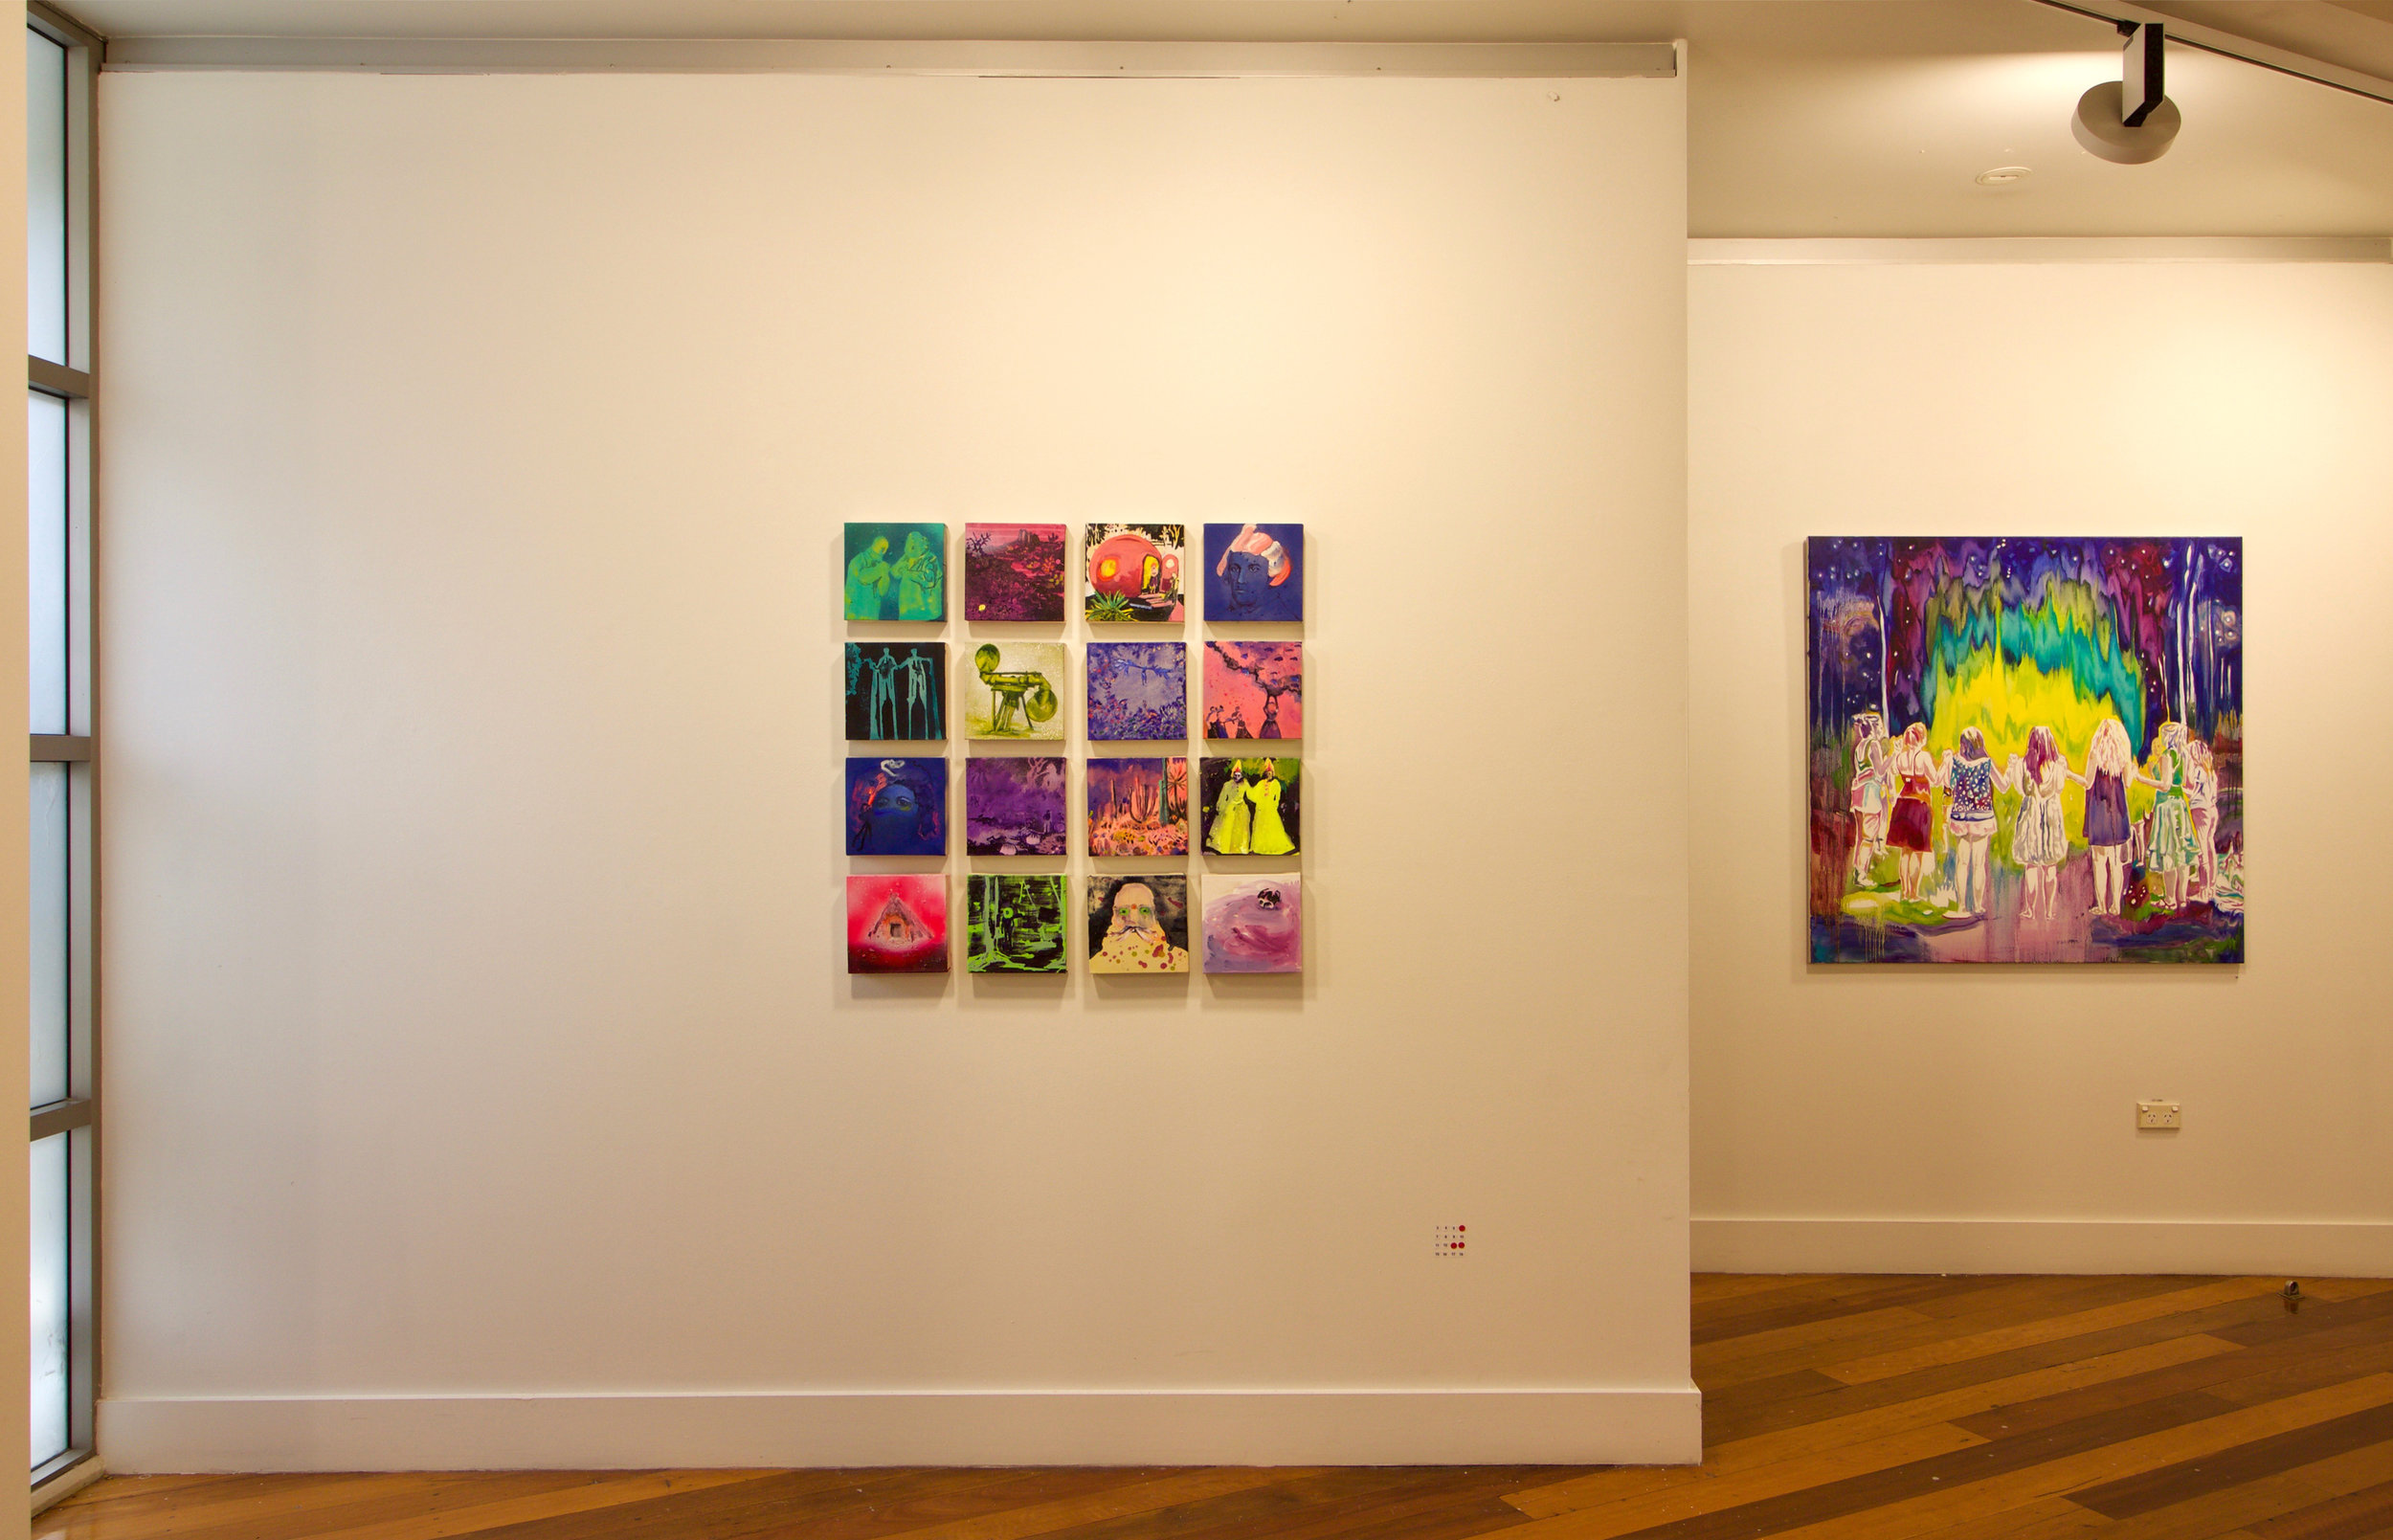 Kathryn Cowen, A Field Guide To Reality 1-16, 2015-19 and Valentina Palonen, The Circle, 2019, installation view